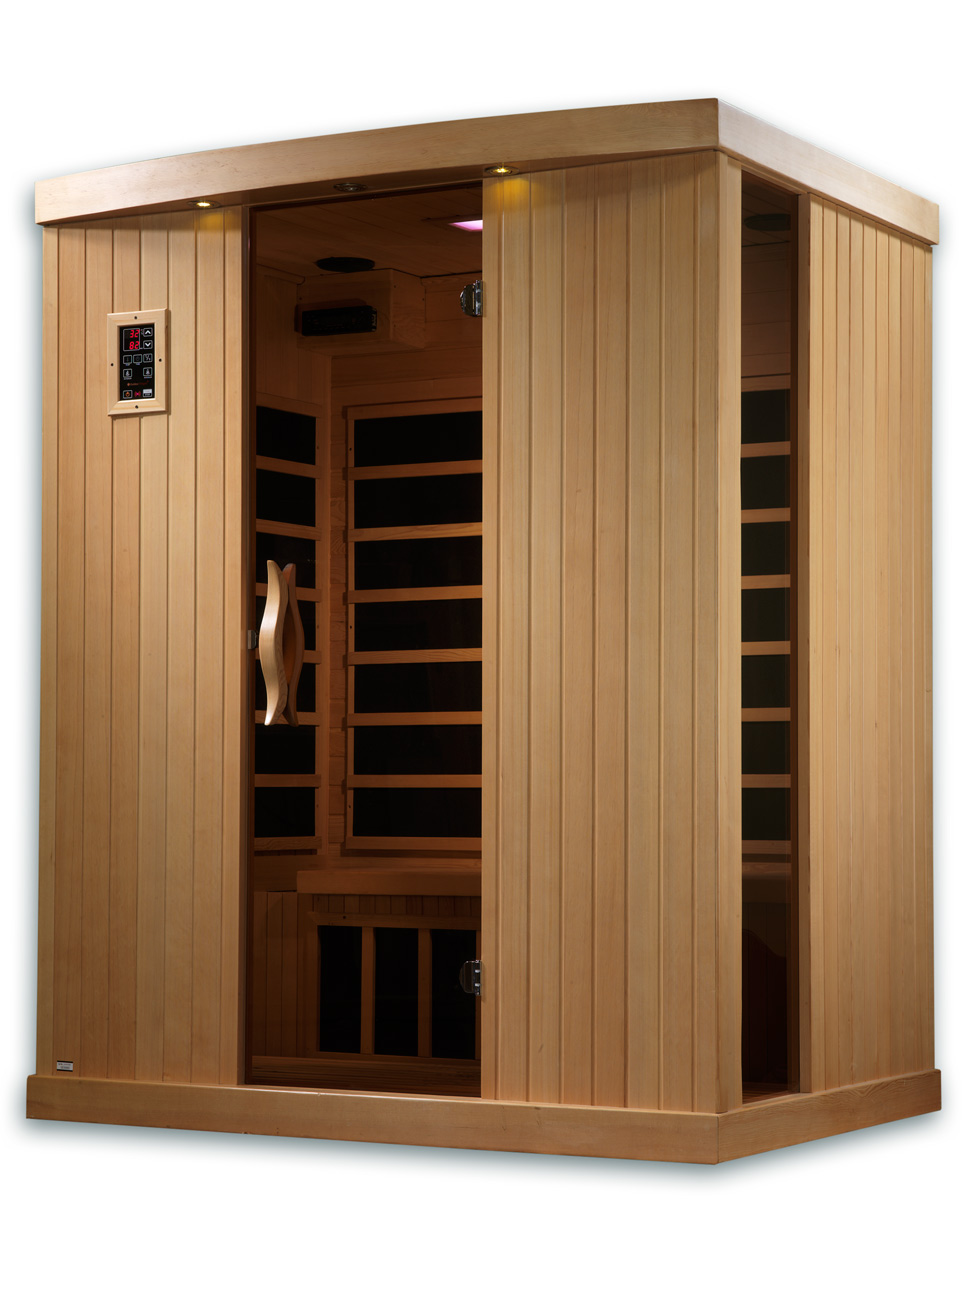 Dry Sauna Kits The Ultimate Guide To Buying Your First Dry Sauna